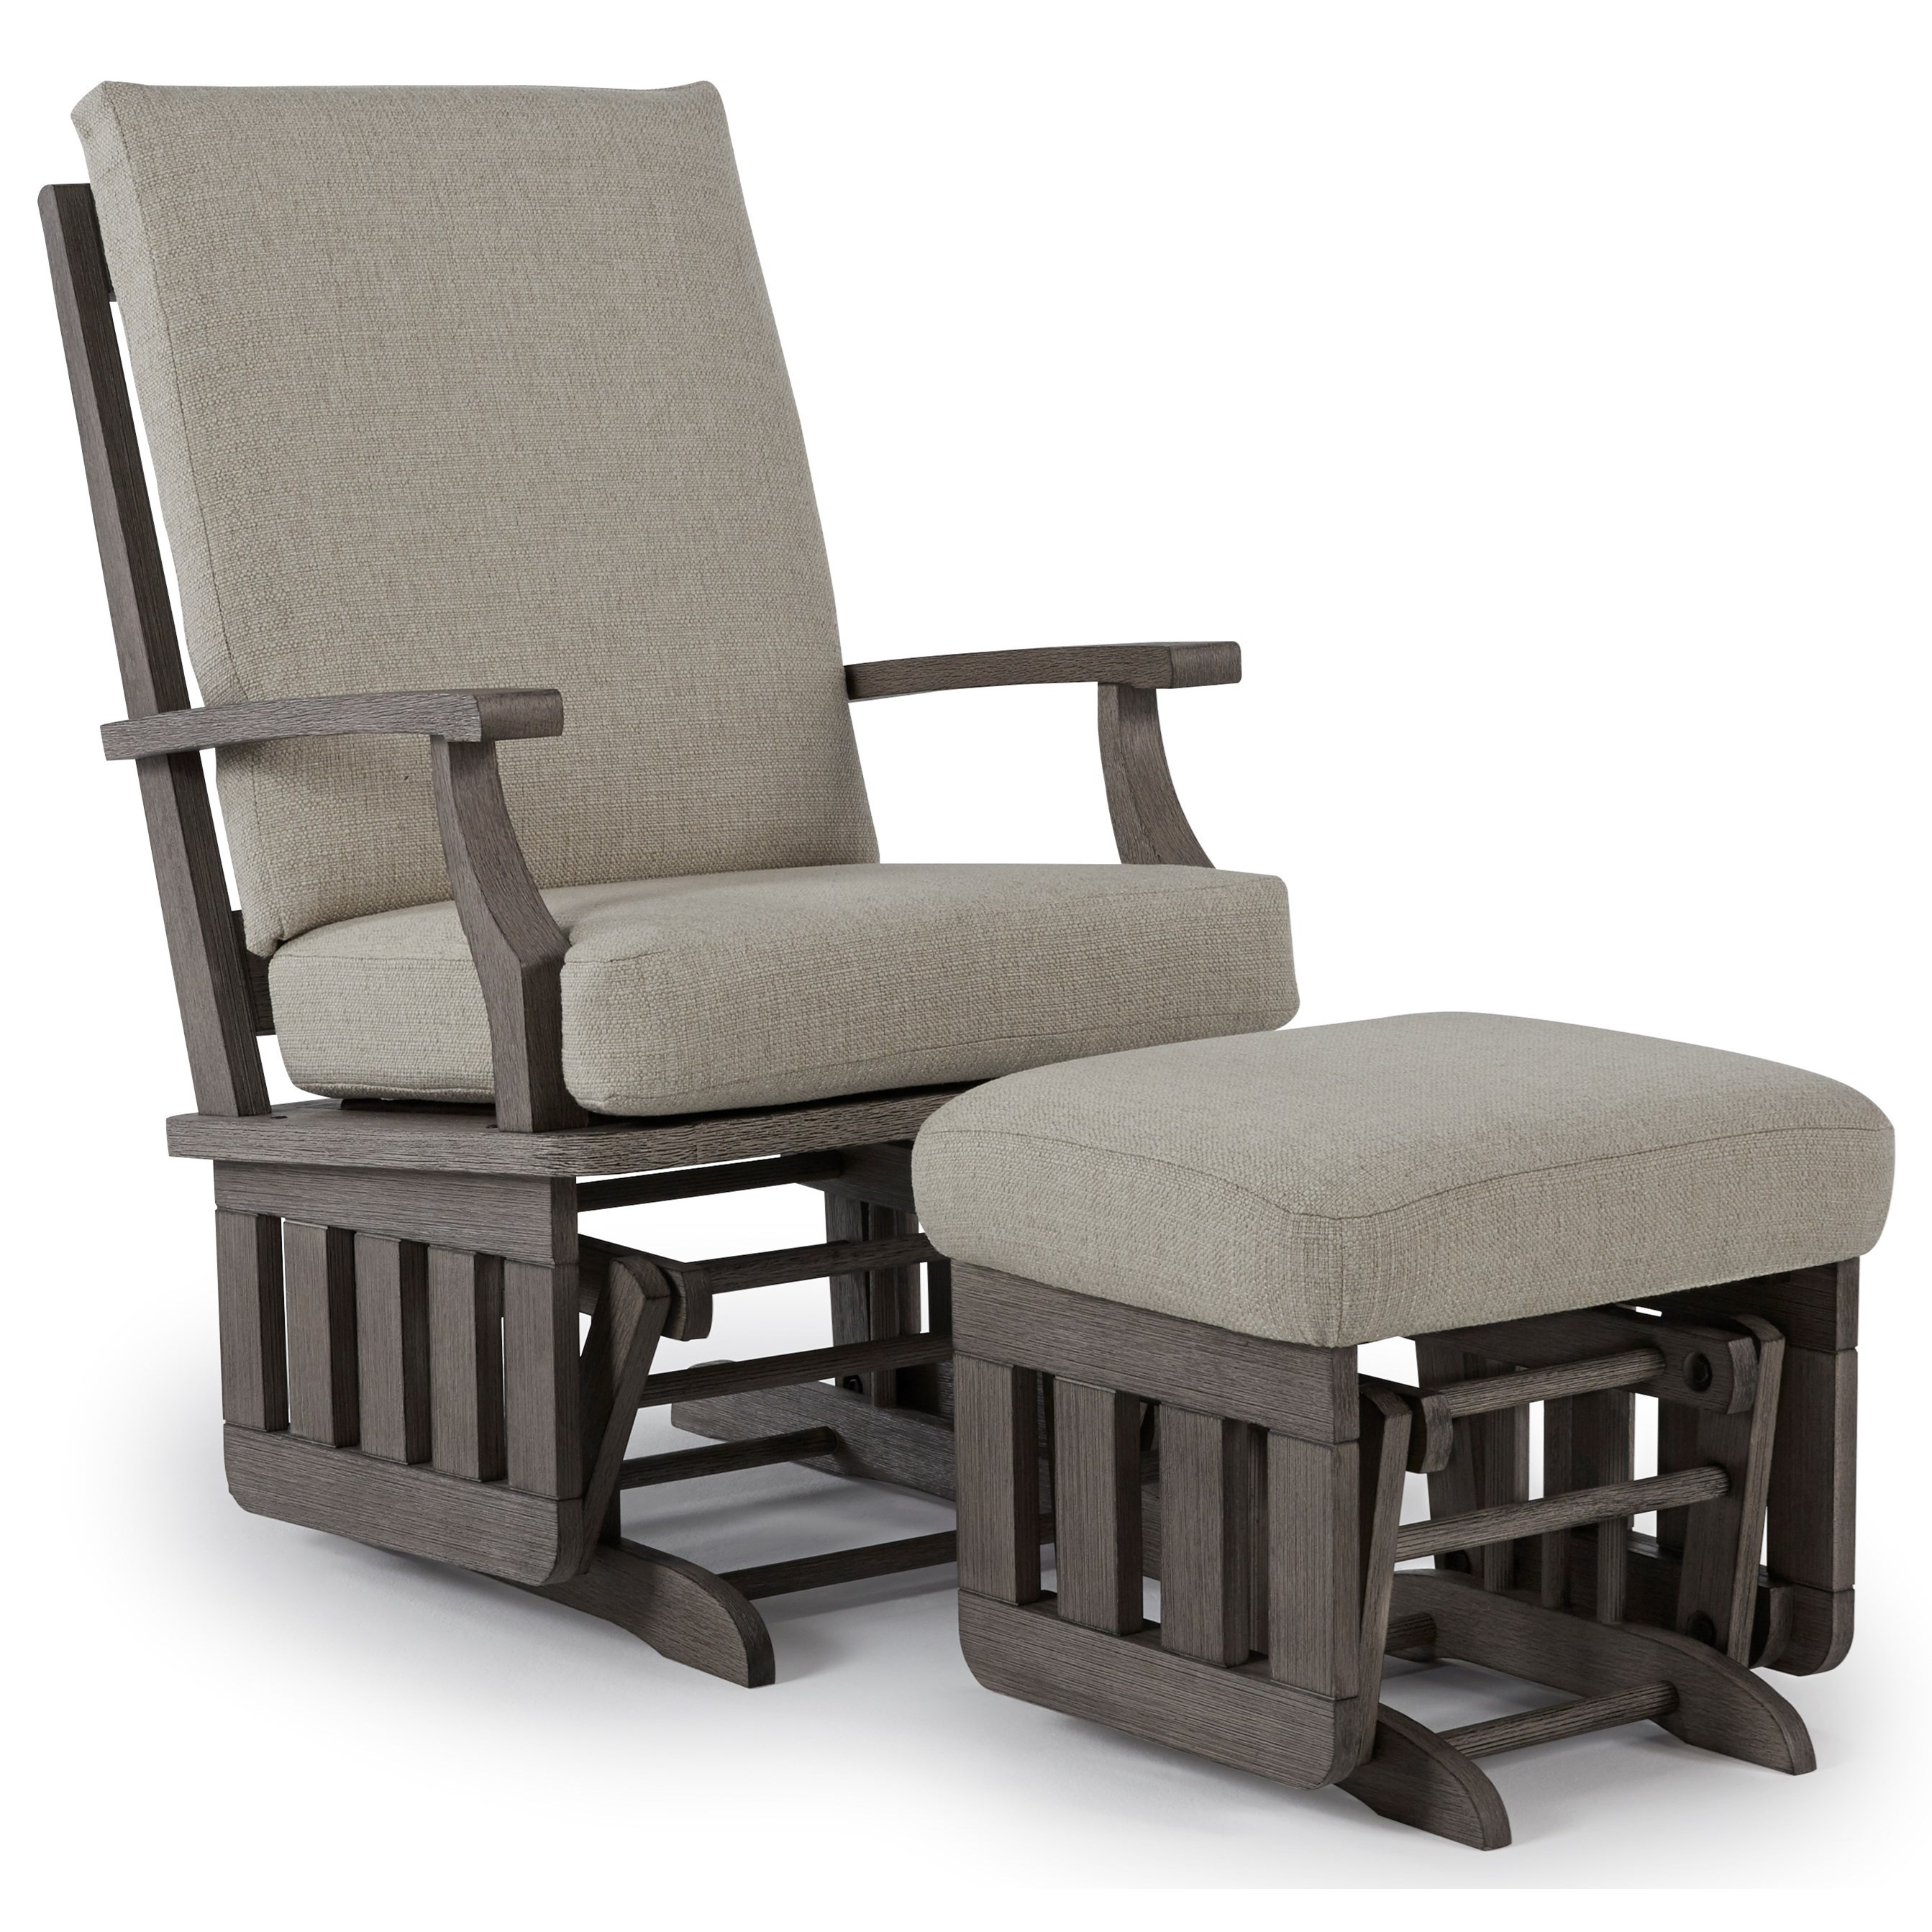 best glider chair padded deck chairs home furnishings rockers casual glide rocker